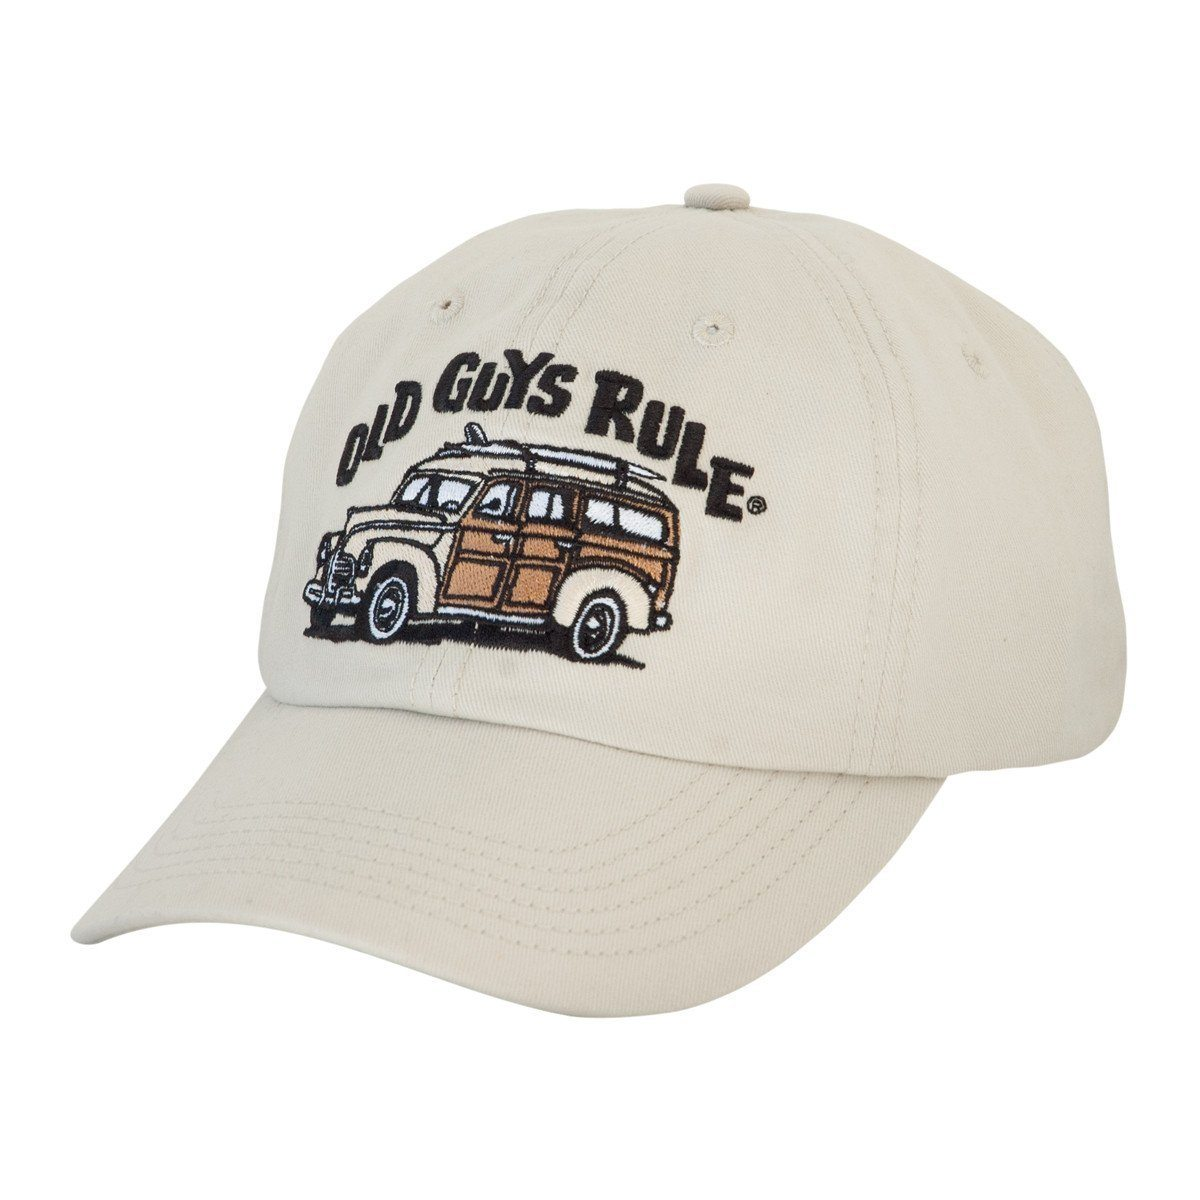 Old Guys Rule - Woodie Cap - Stone Hat- Front View